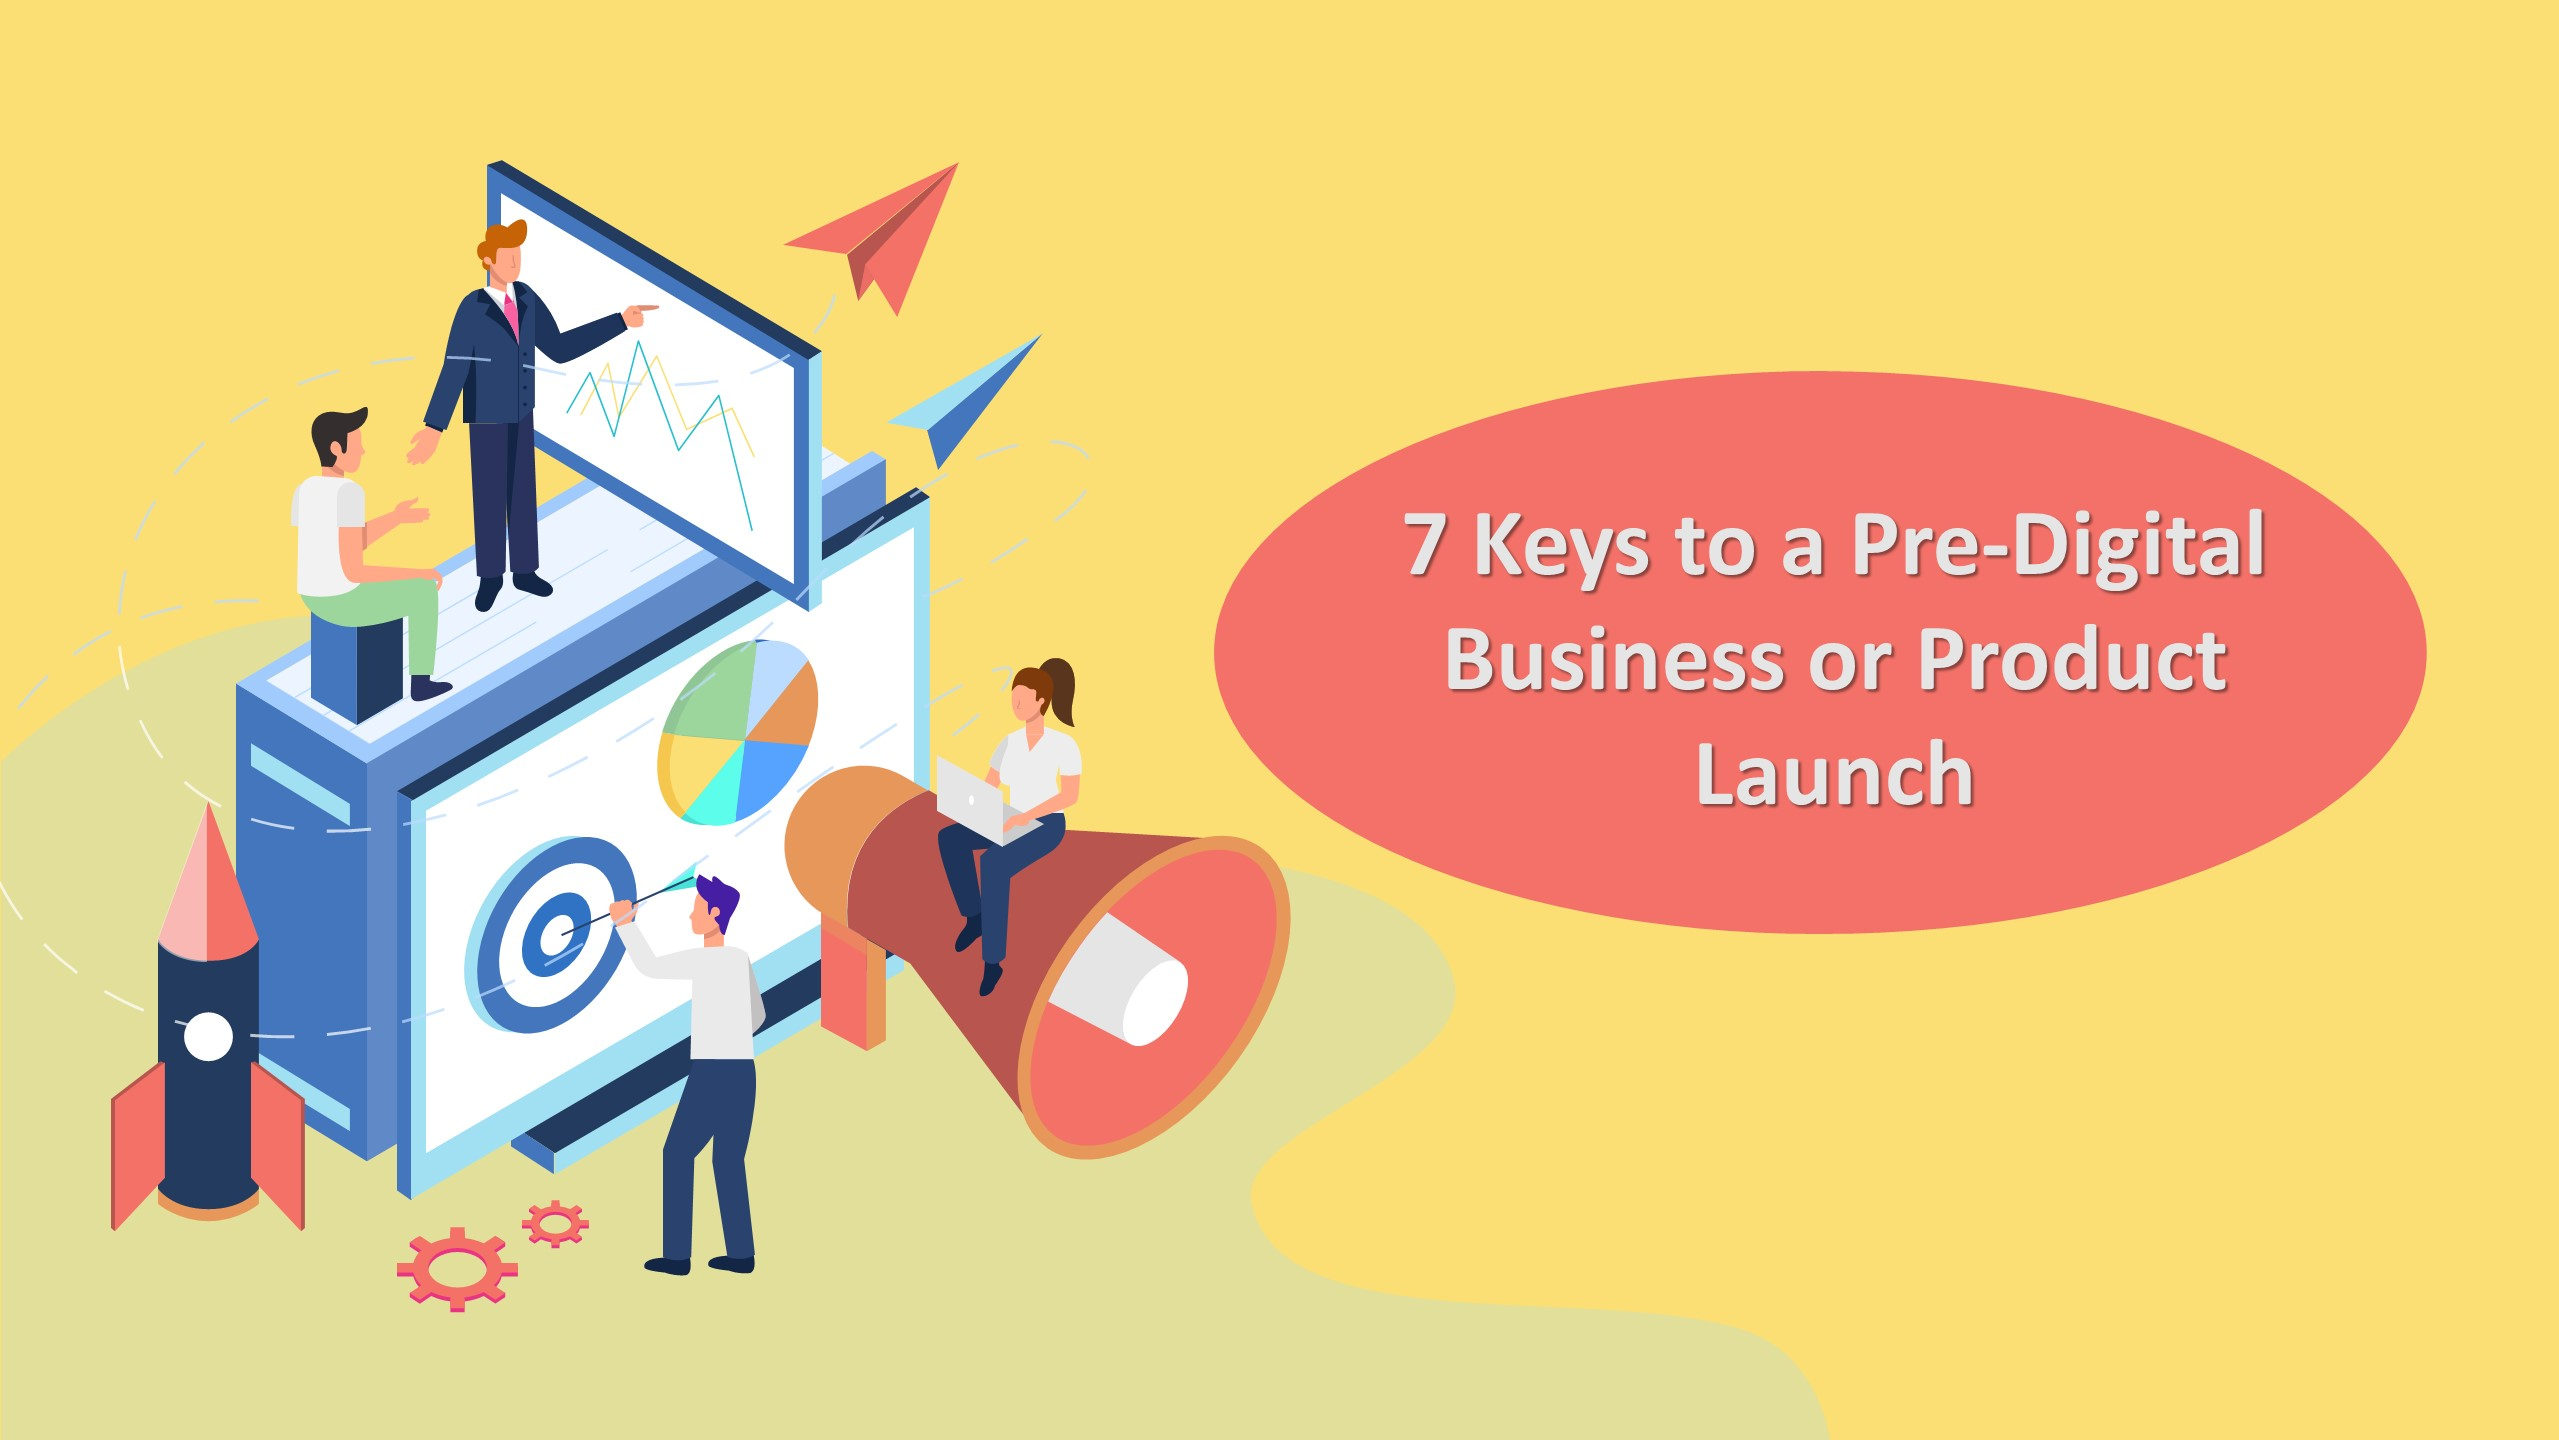 7 Keys to a Pre-Digital Business or Product Launch